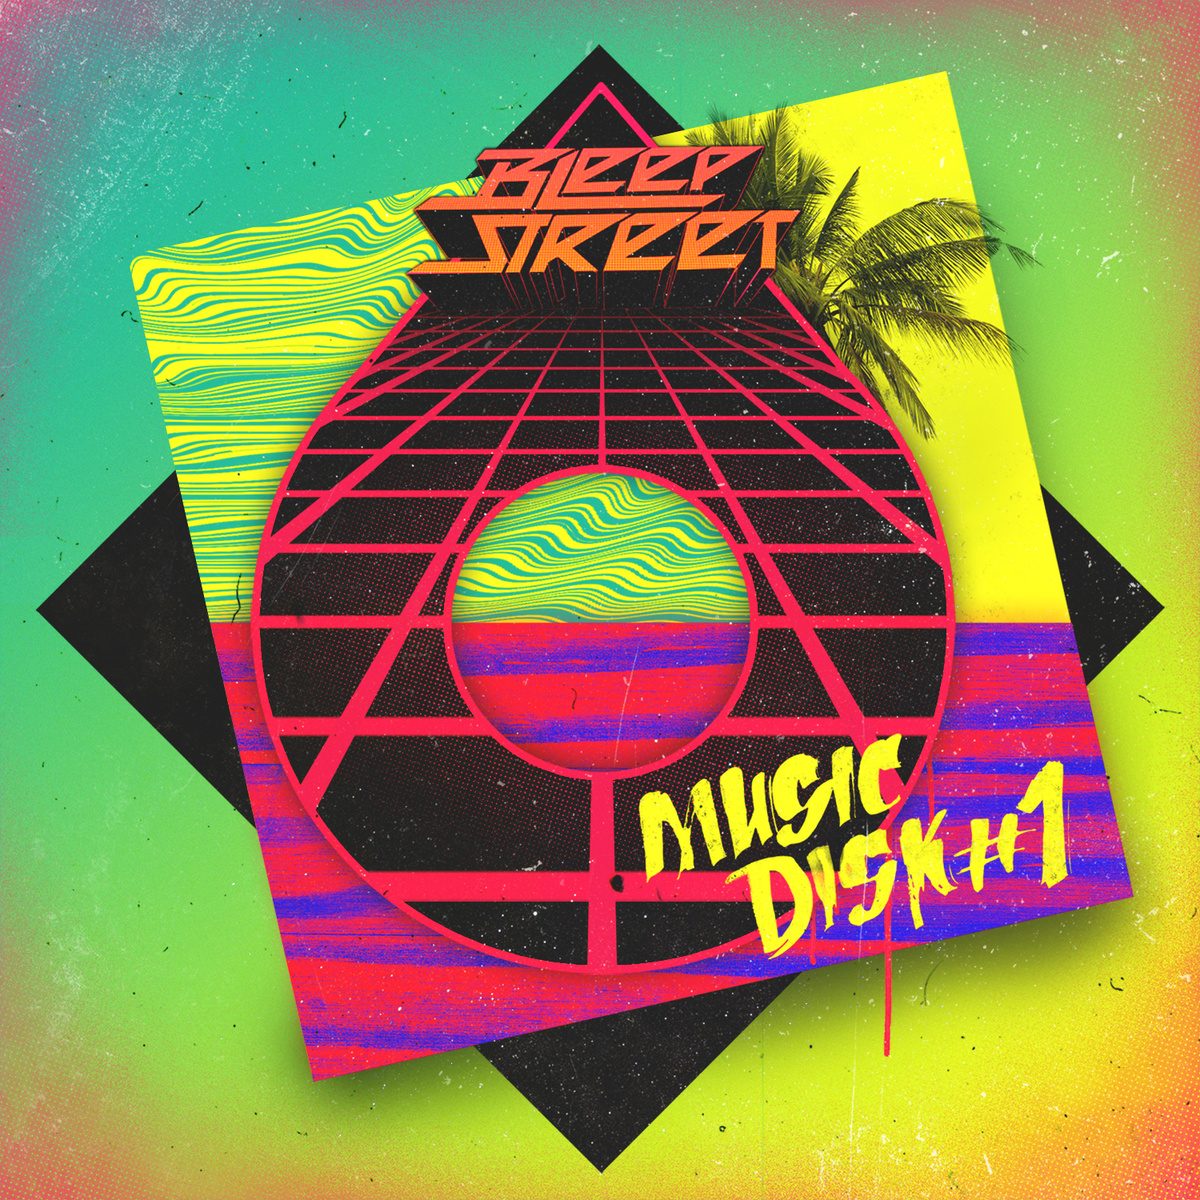 V/A: Music Disk #1 (Bleepstreet MP3)